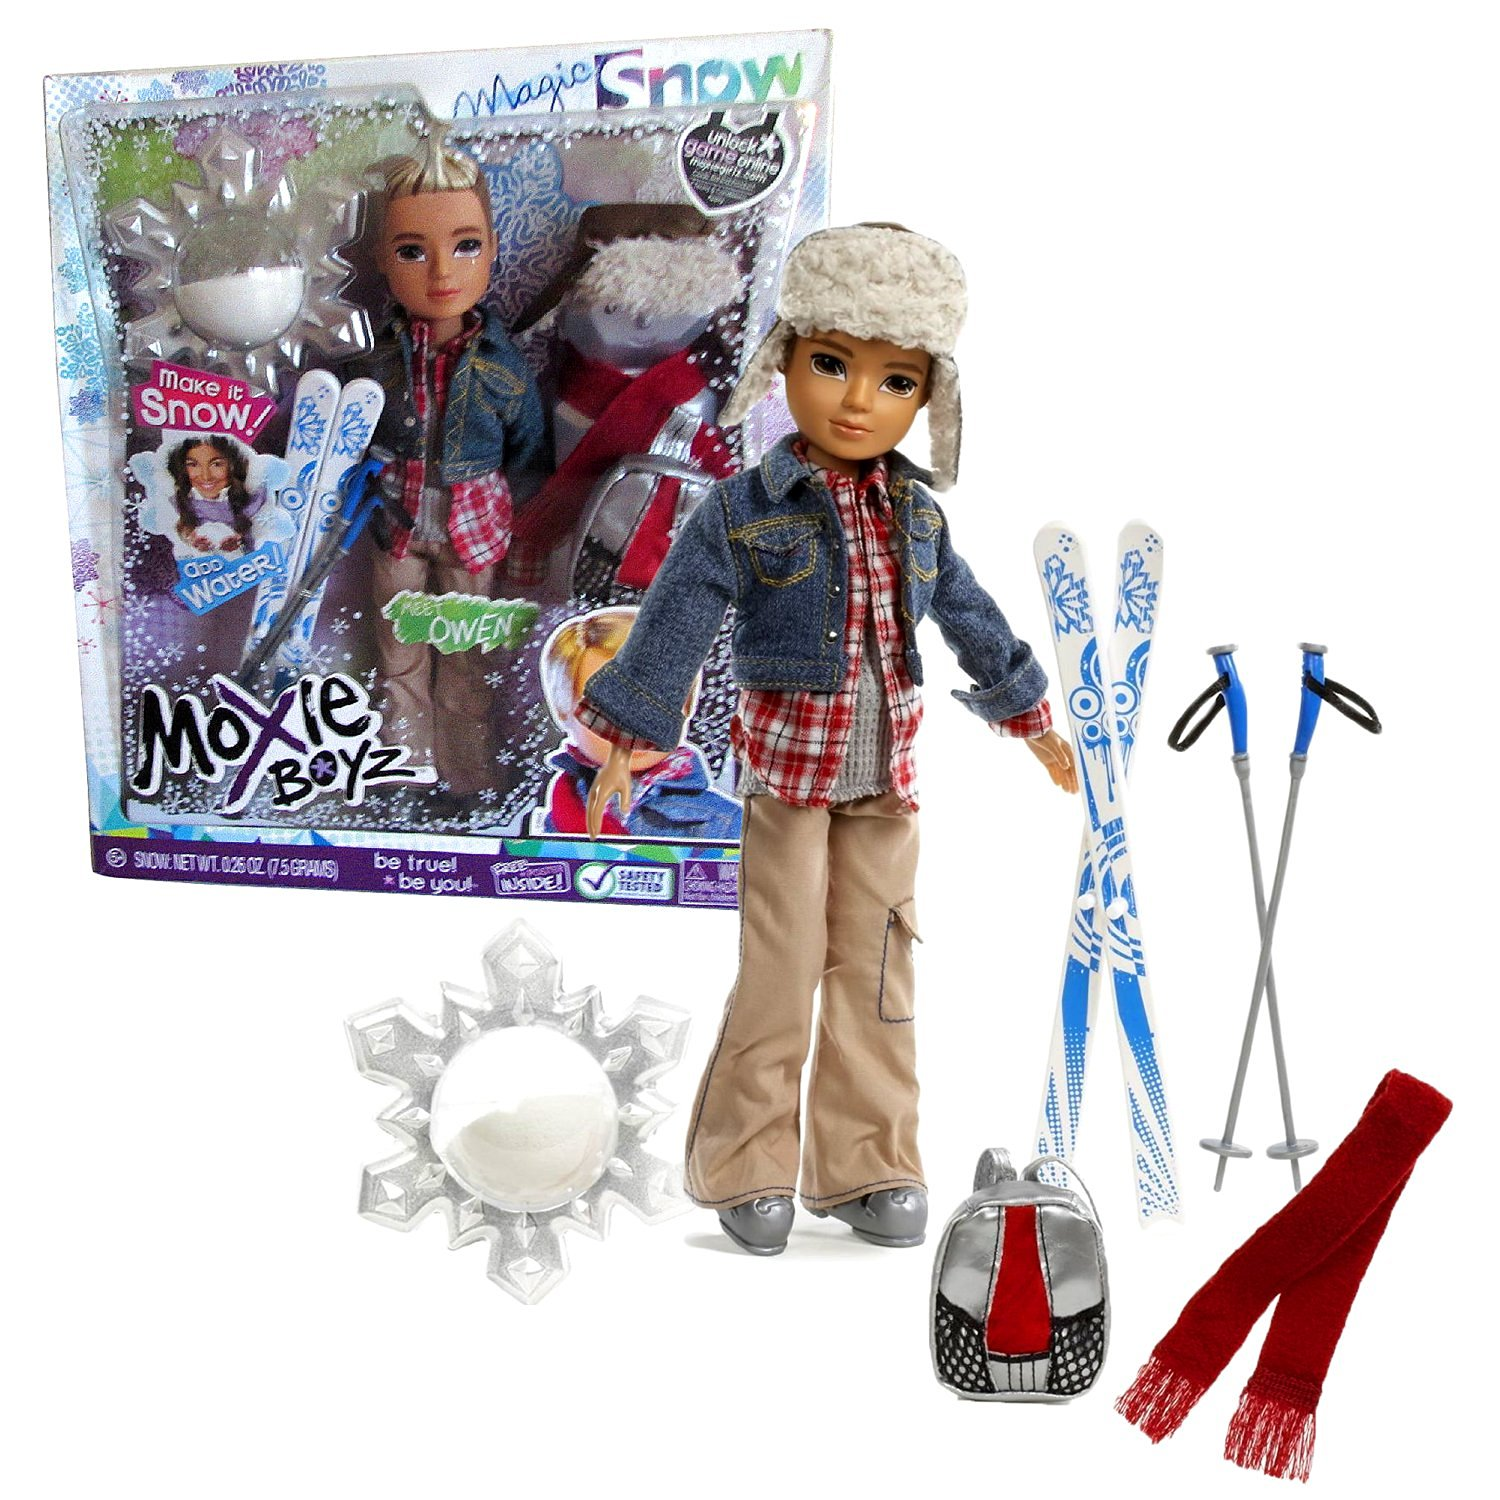 MGA Entertainment Moxie Boyz Magic Snow Series 11 Inch Doll - OWEN with Artificial Snow, Hat, Scarf, Backpack, 1 Pair of Skis and 1 Pair of Ski Poles Plus Bonus Poster